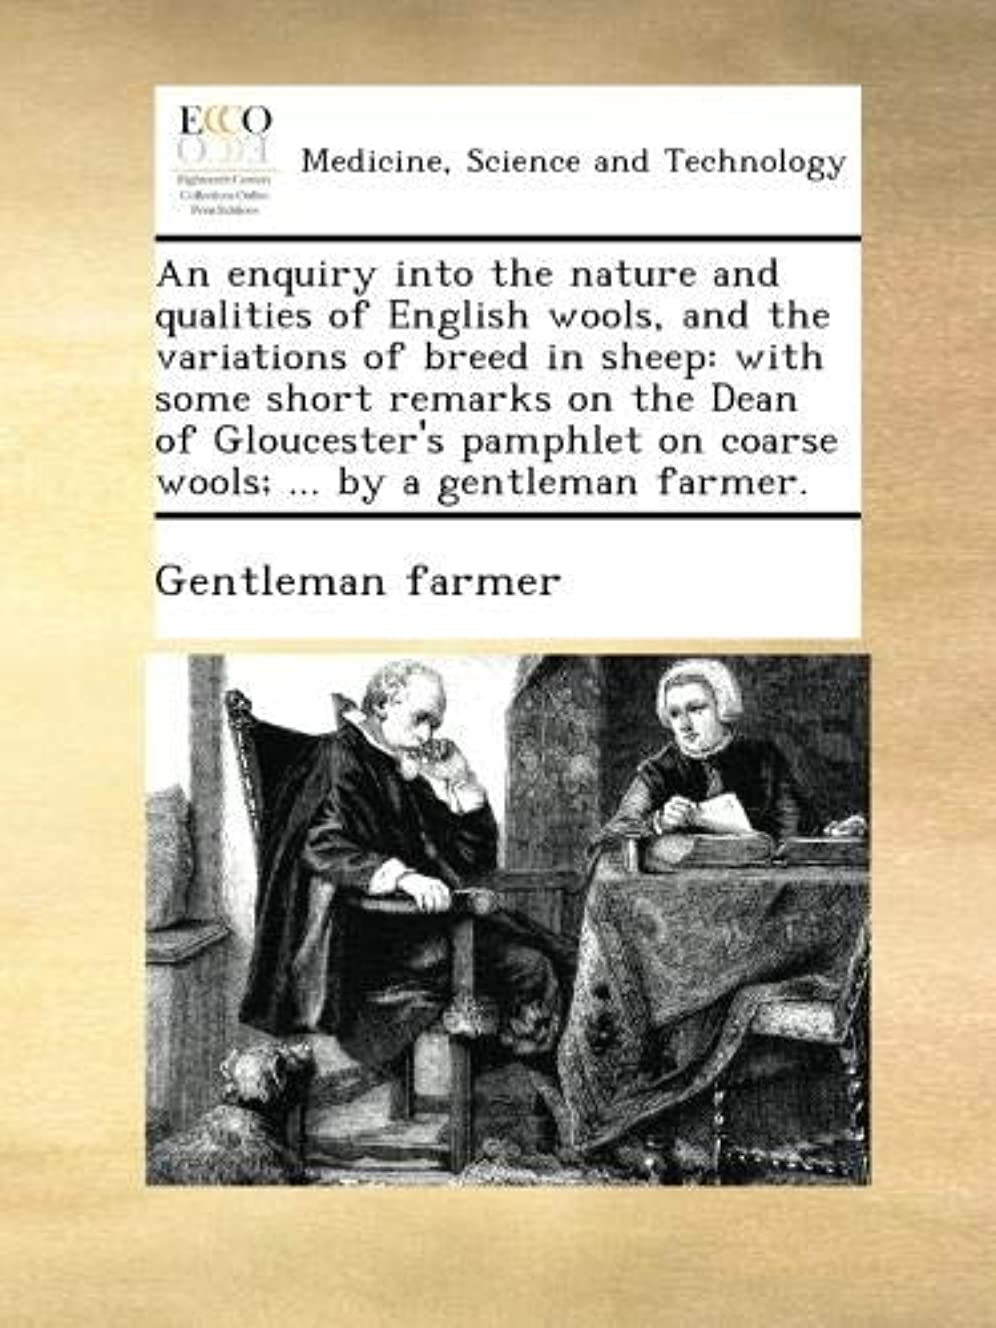 つまらないロバ愚かなAn enquiry into the nature and qualities of English wools, and the variations of breed in sheep: with some short remarks on the Dean of Gloucester's pamphlet on coarse wools; ... by a gentleman farmer.